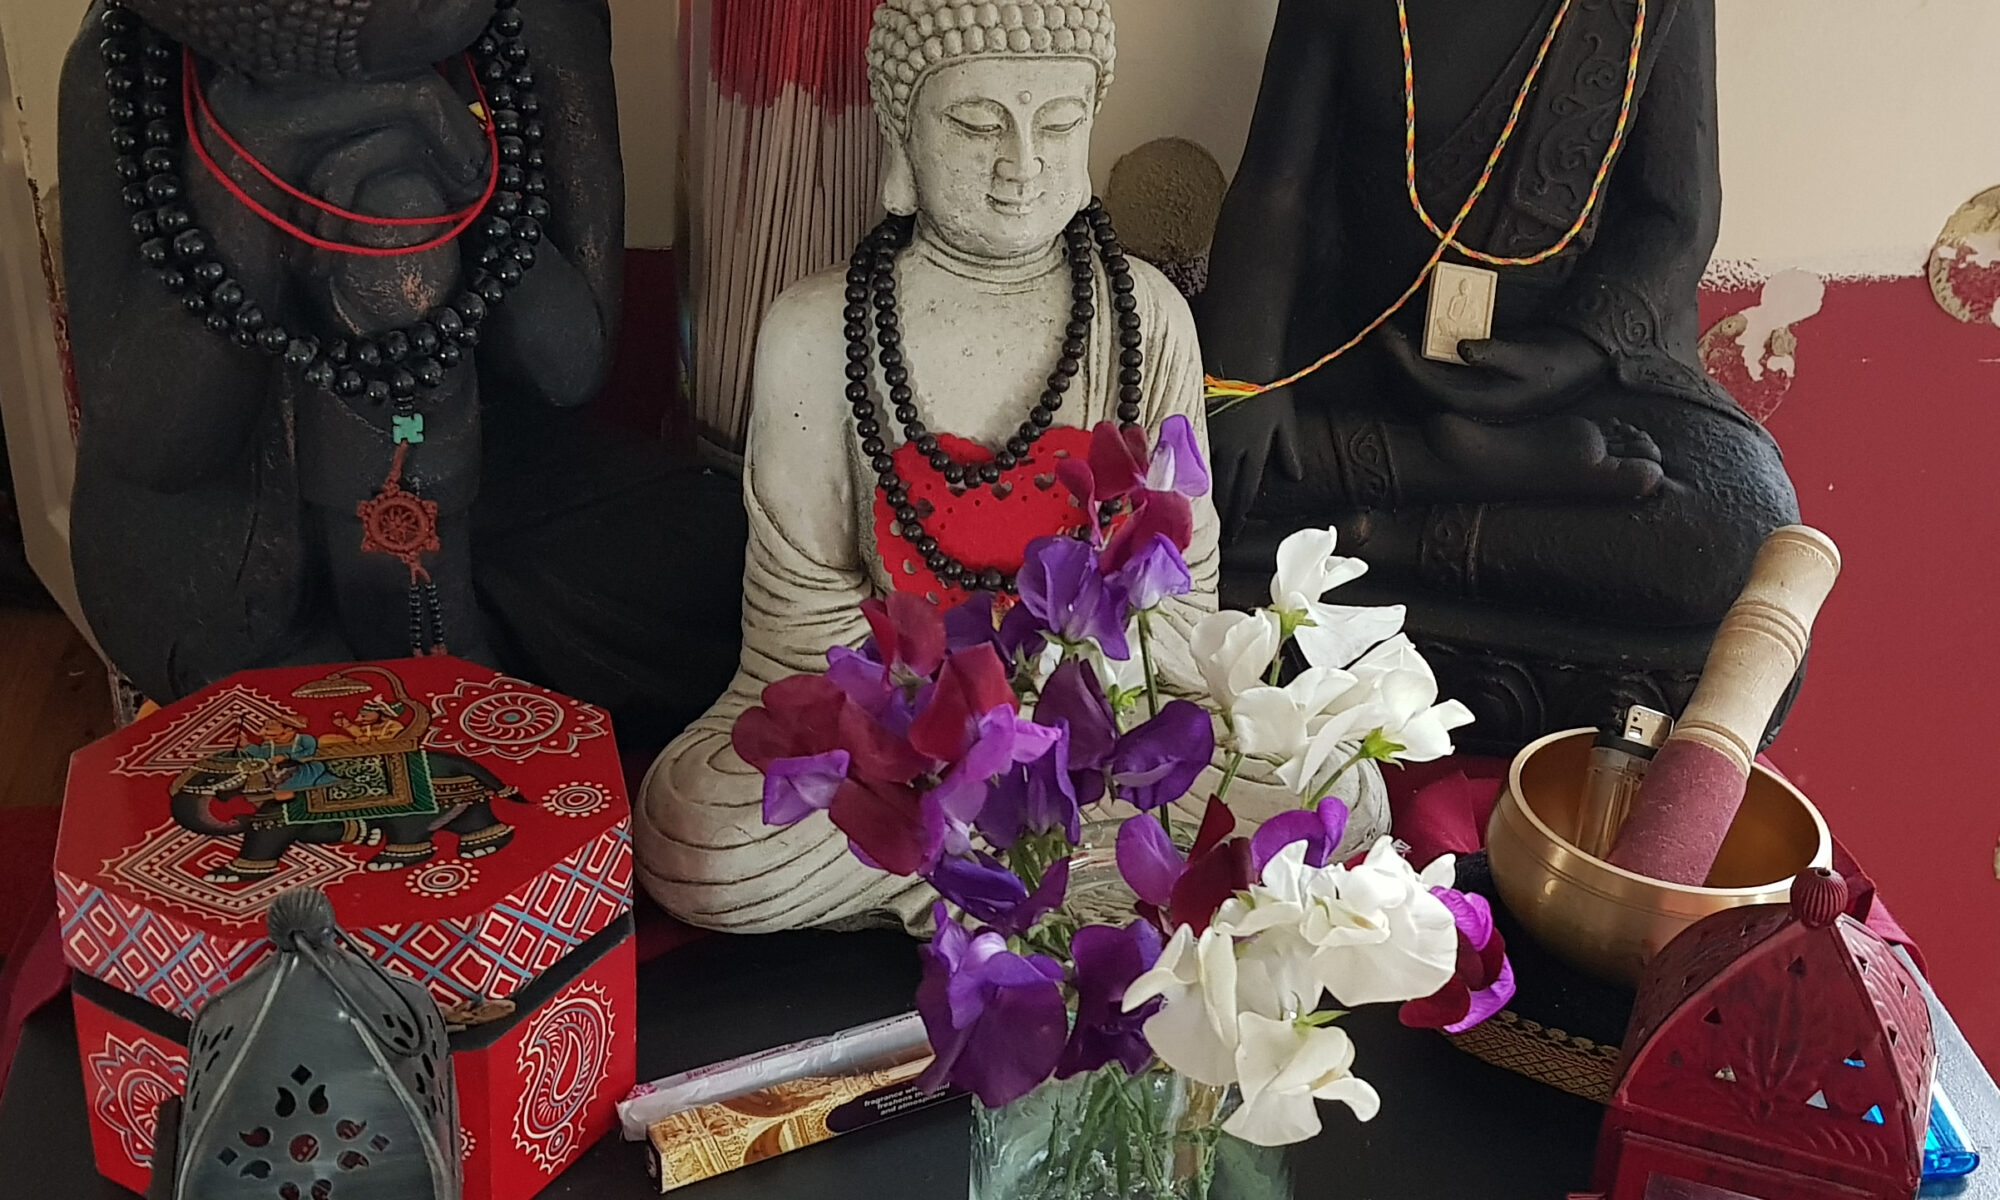 Vase of Sweet Peas in flower and Buddha figures.